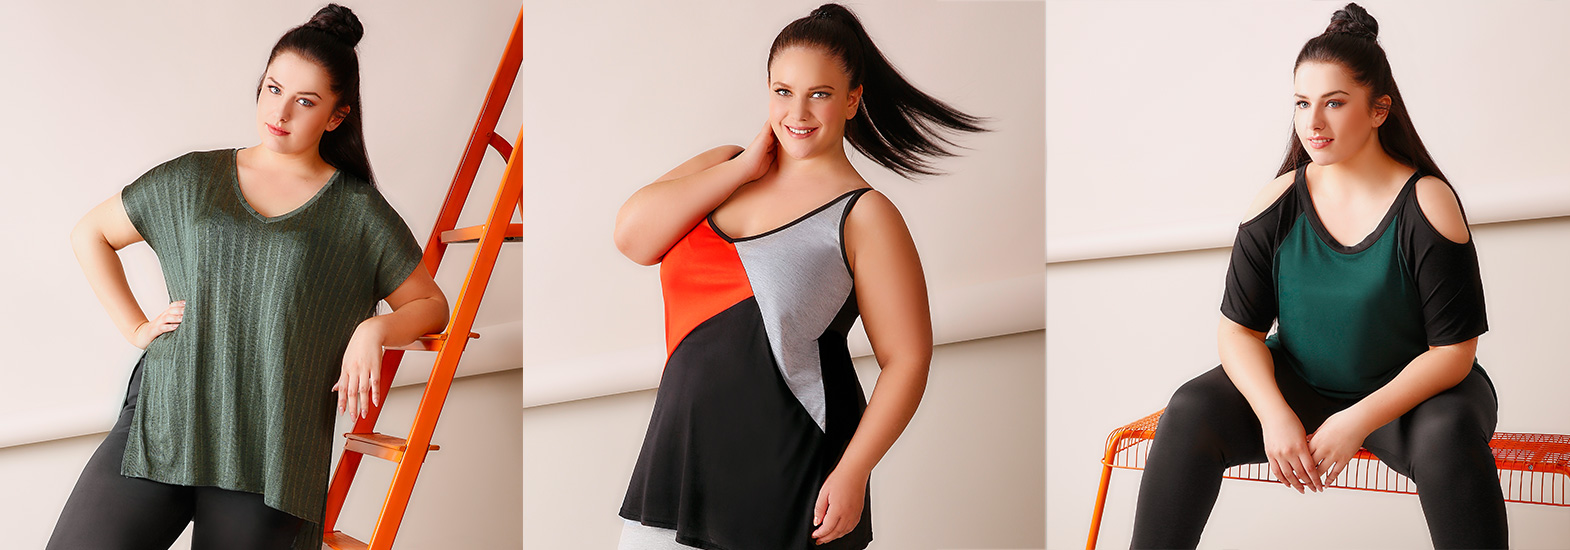 Athleisure Plus Size